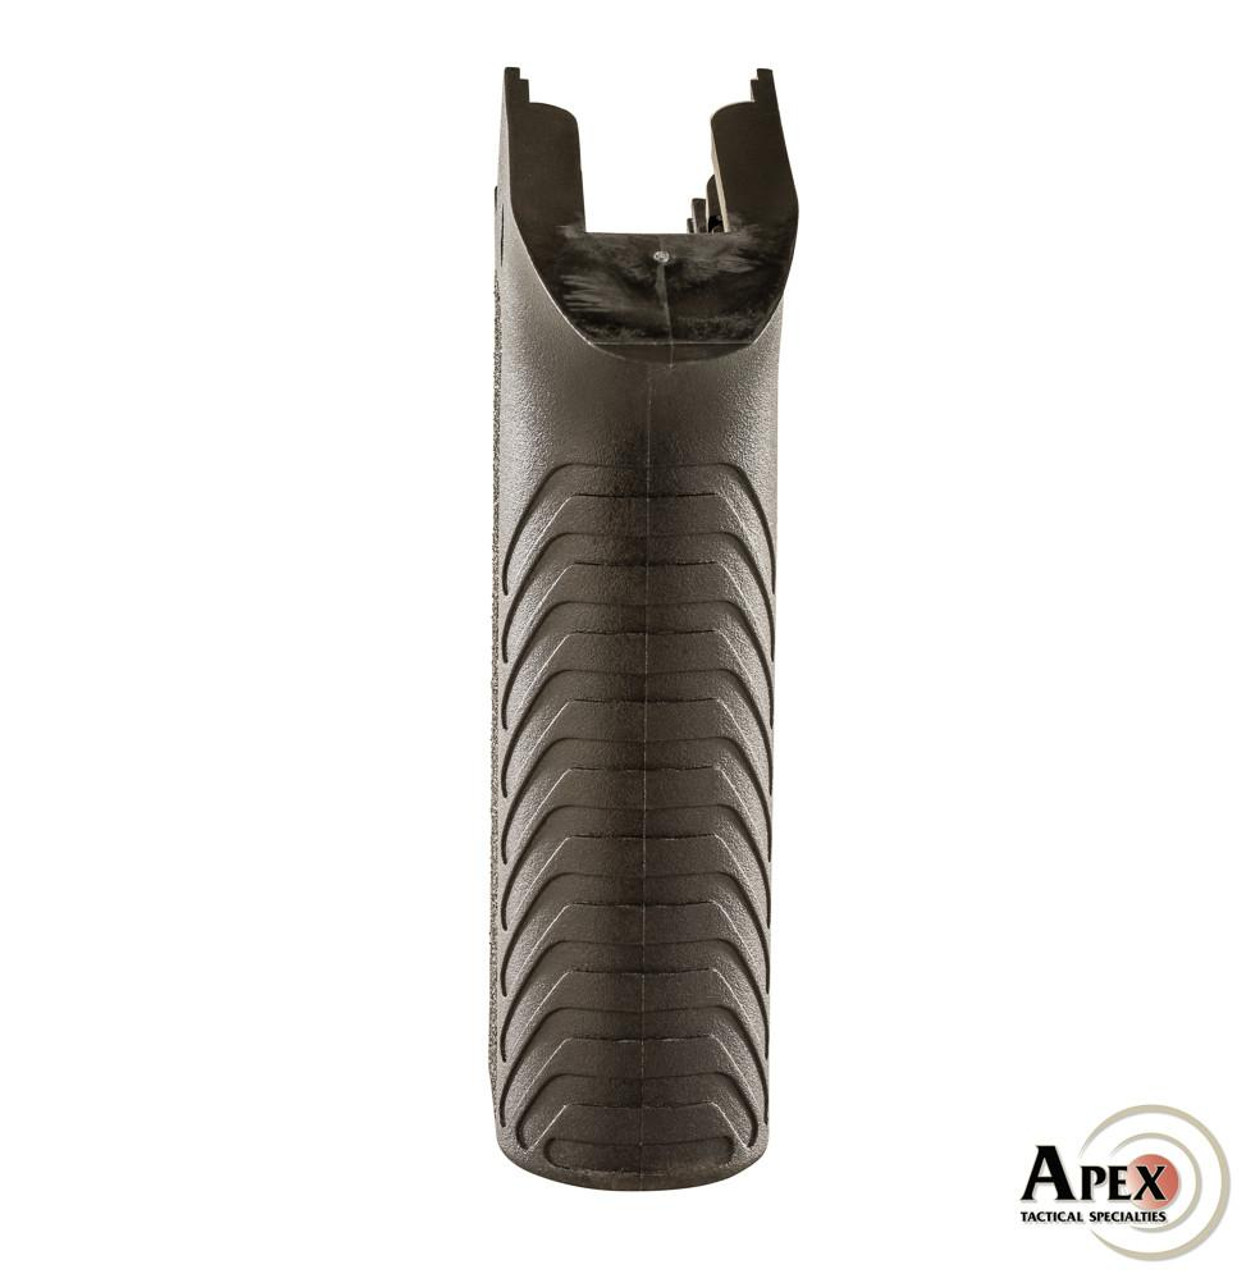 Apex Tactical Optimized Grip for CZ Scorpion